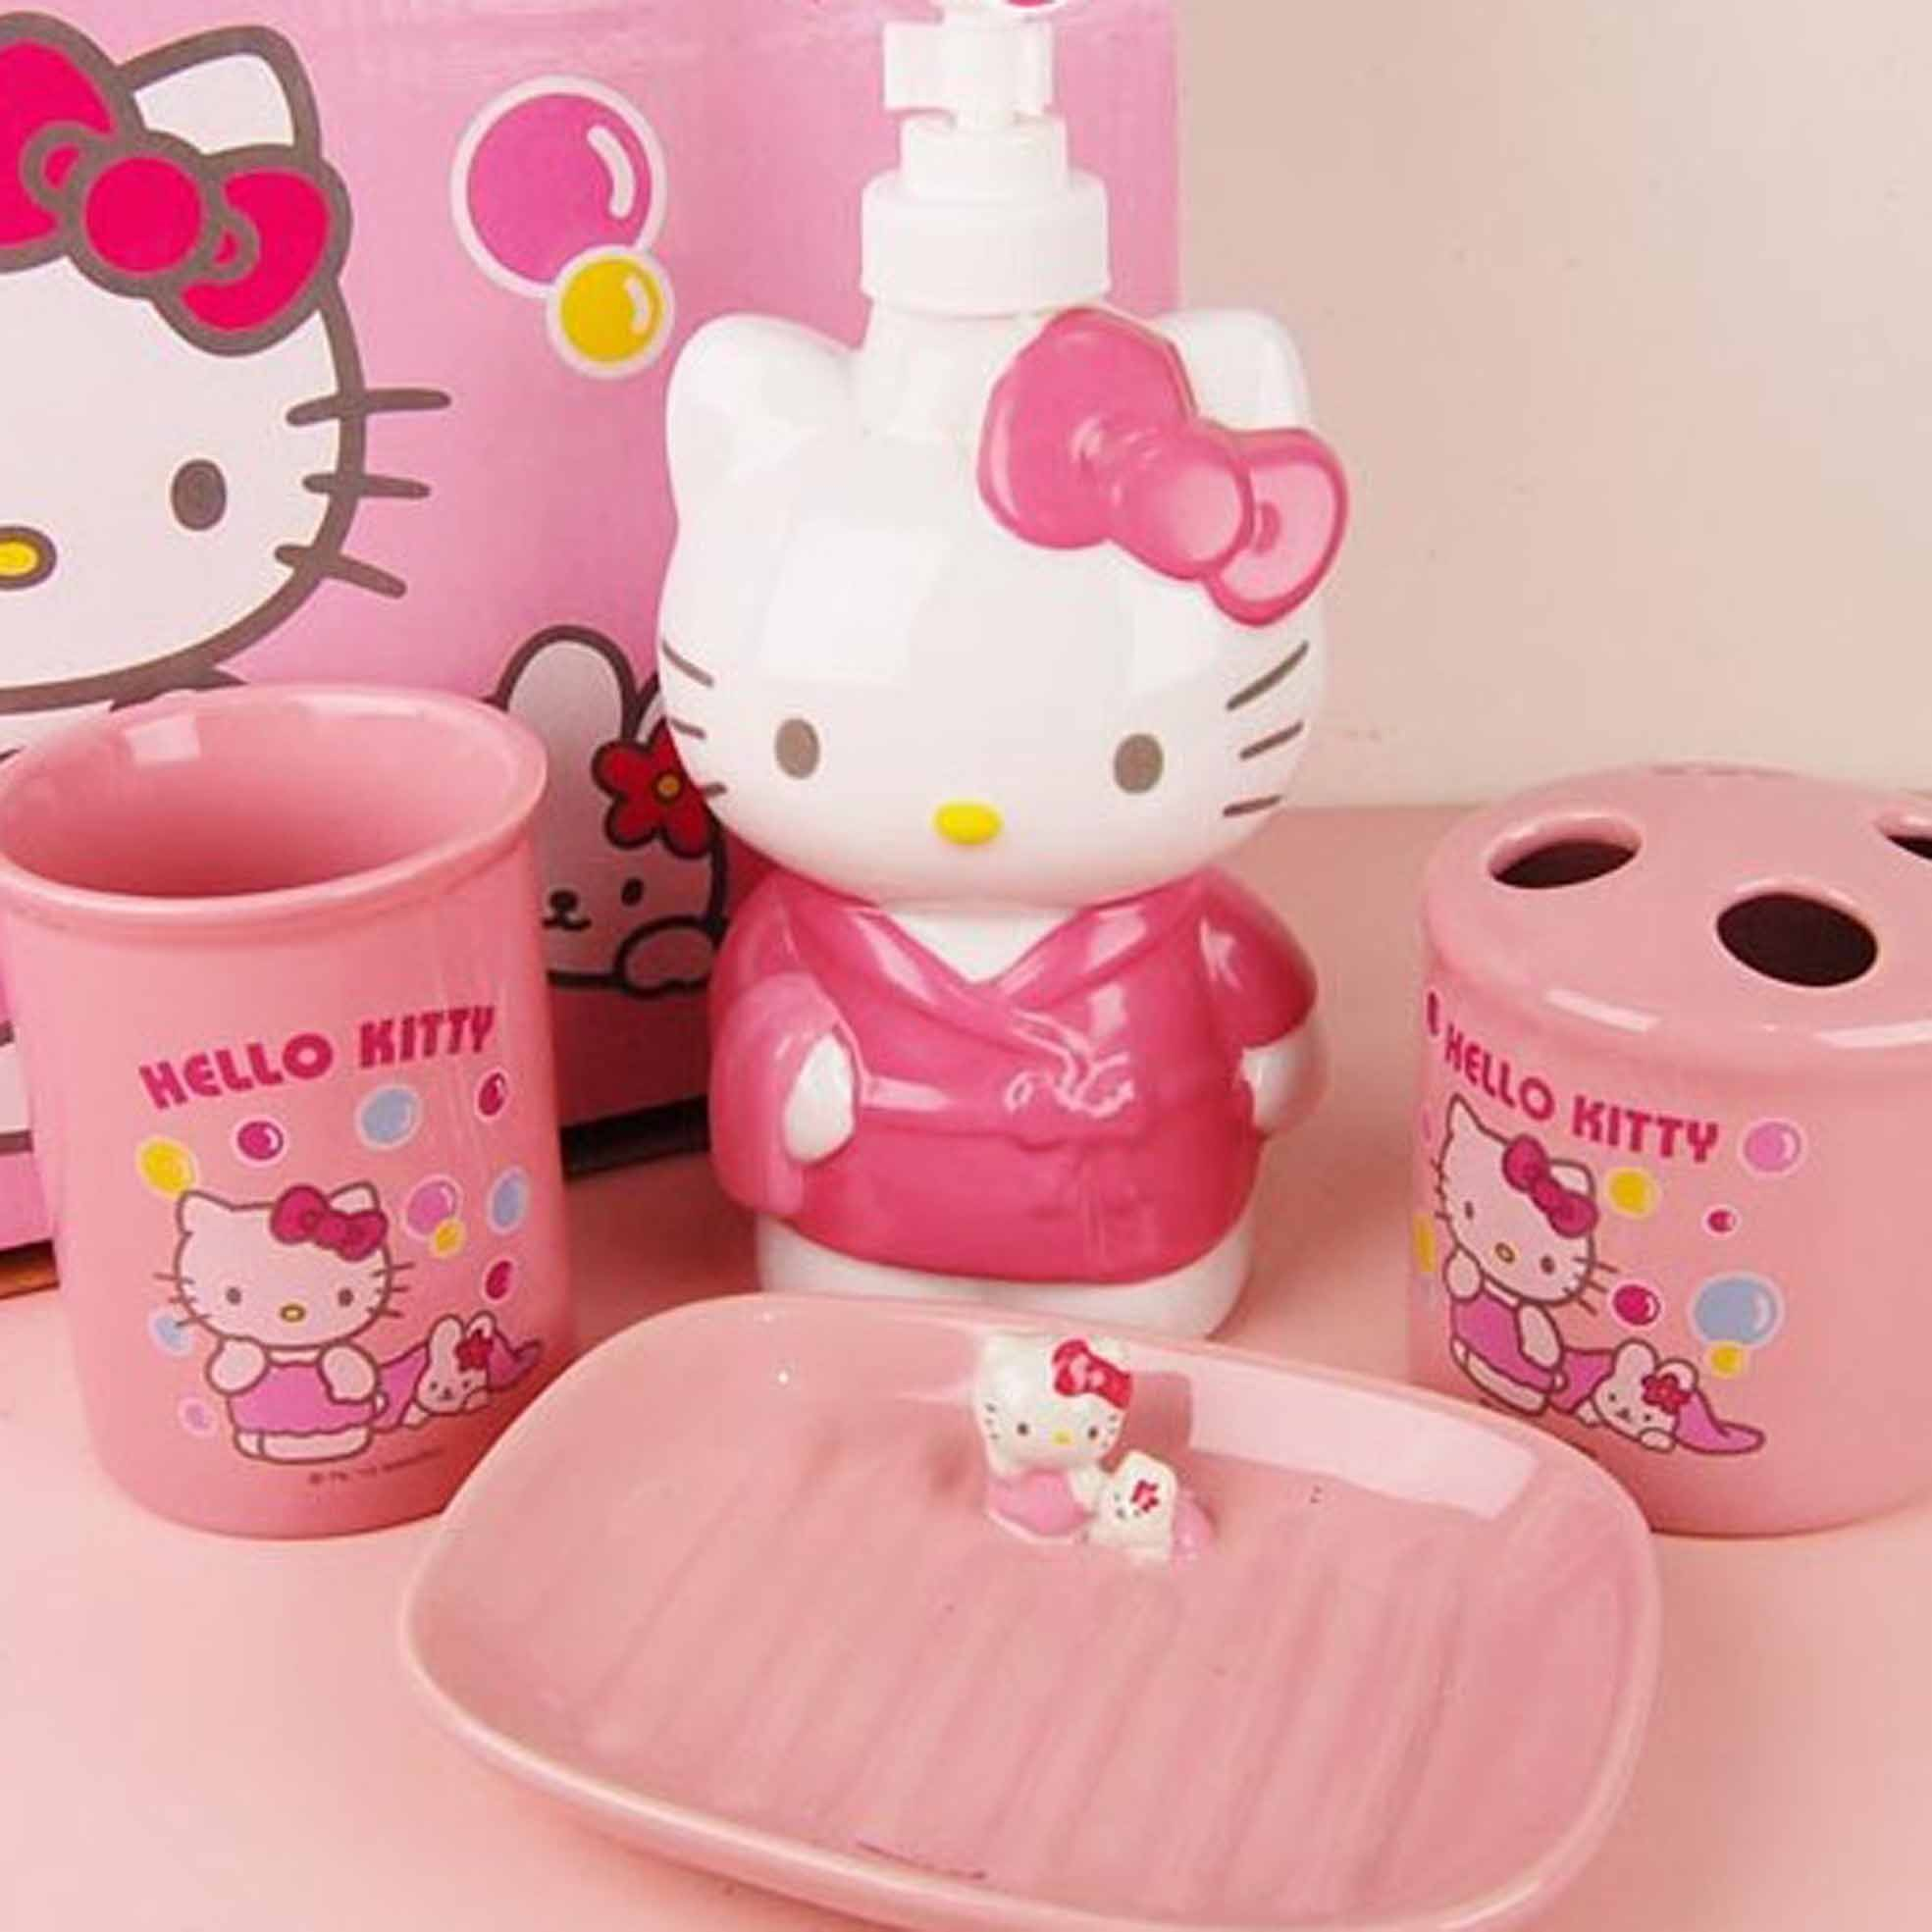 Hello Kitty Kitchen Accessories: Hello Kitty Bathroom Set